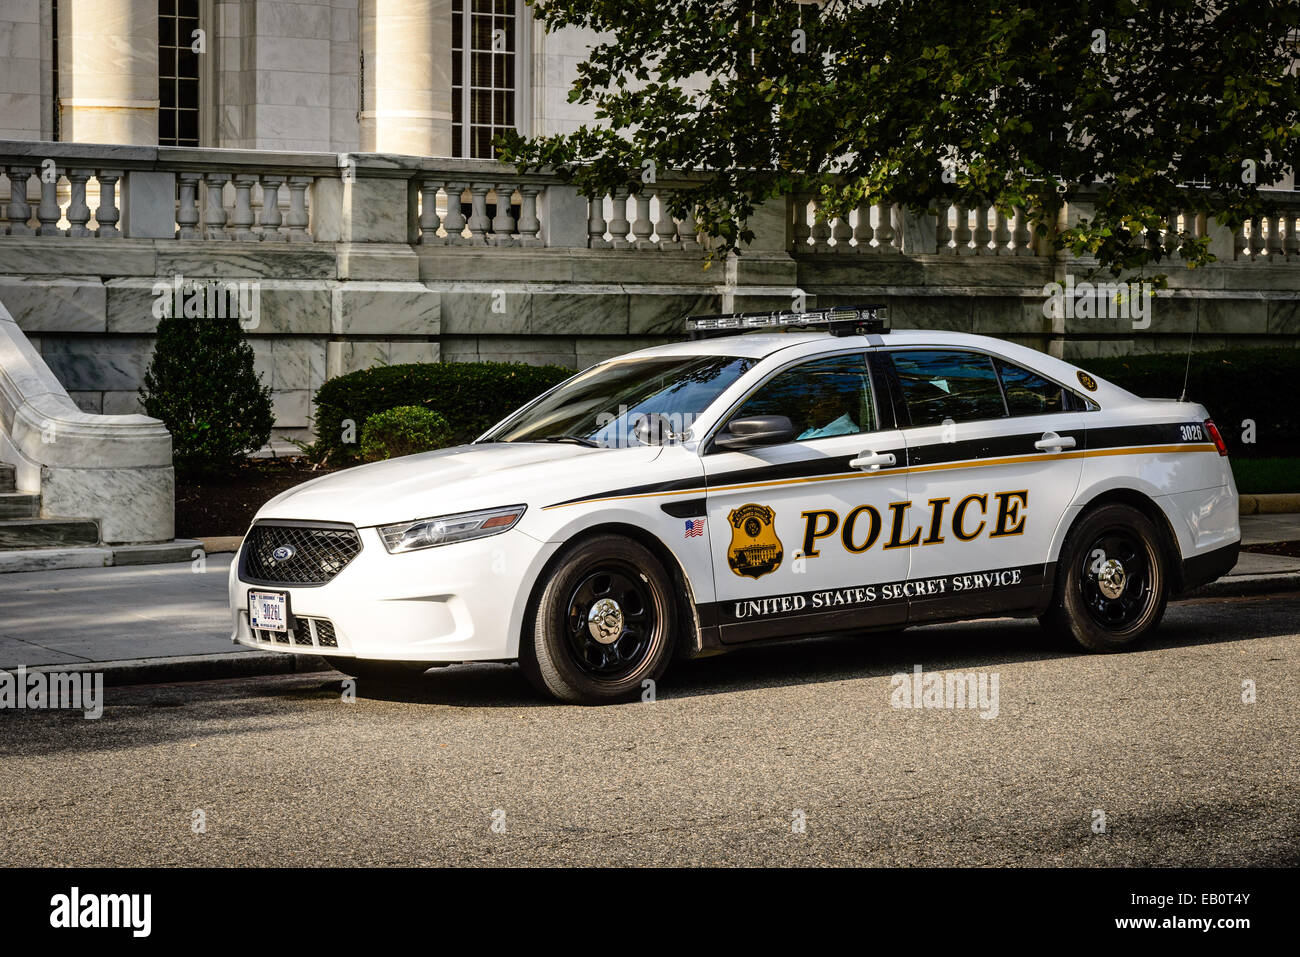 United states secret service police ford taurus police car for Washington dc department of motor vehicles